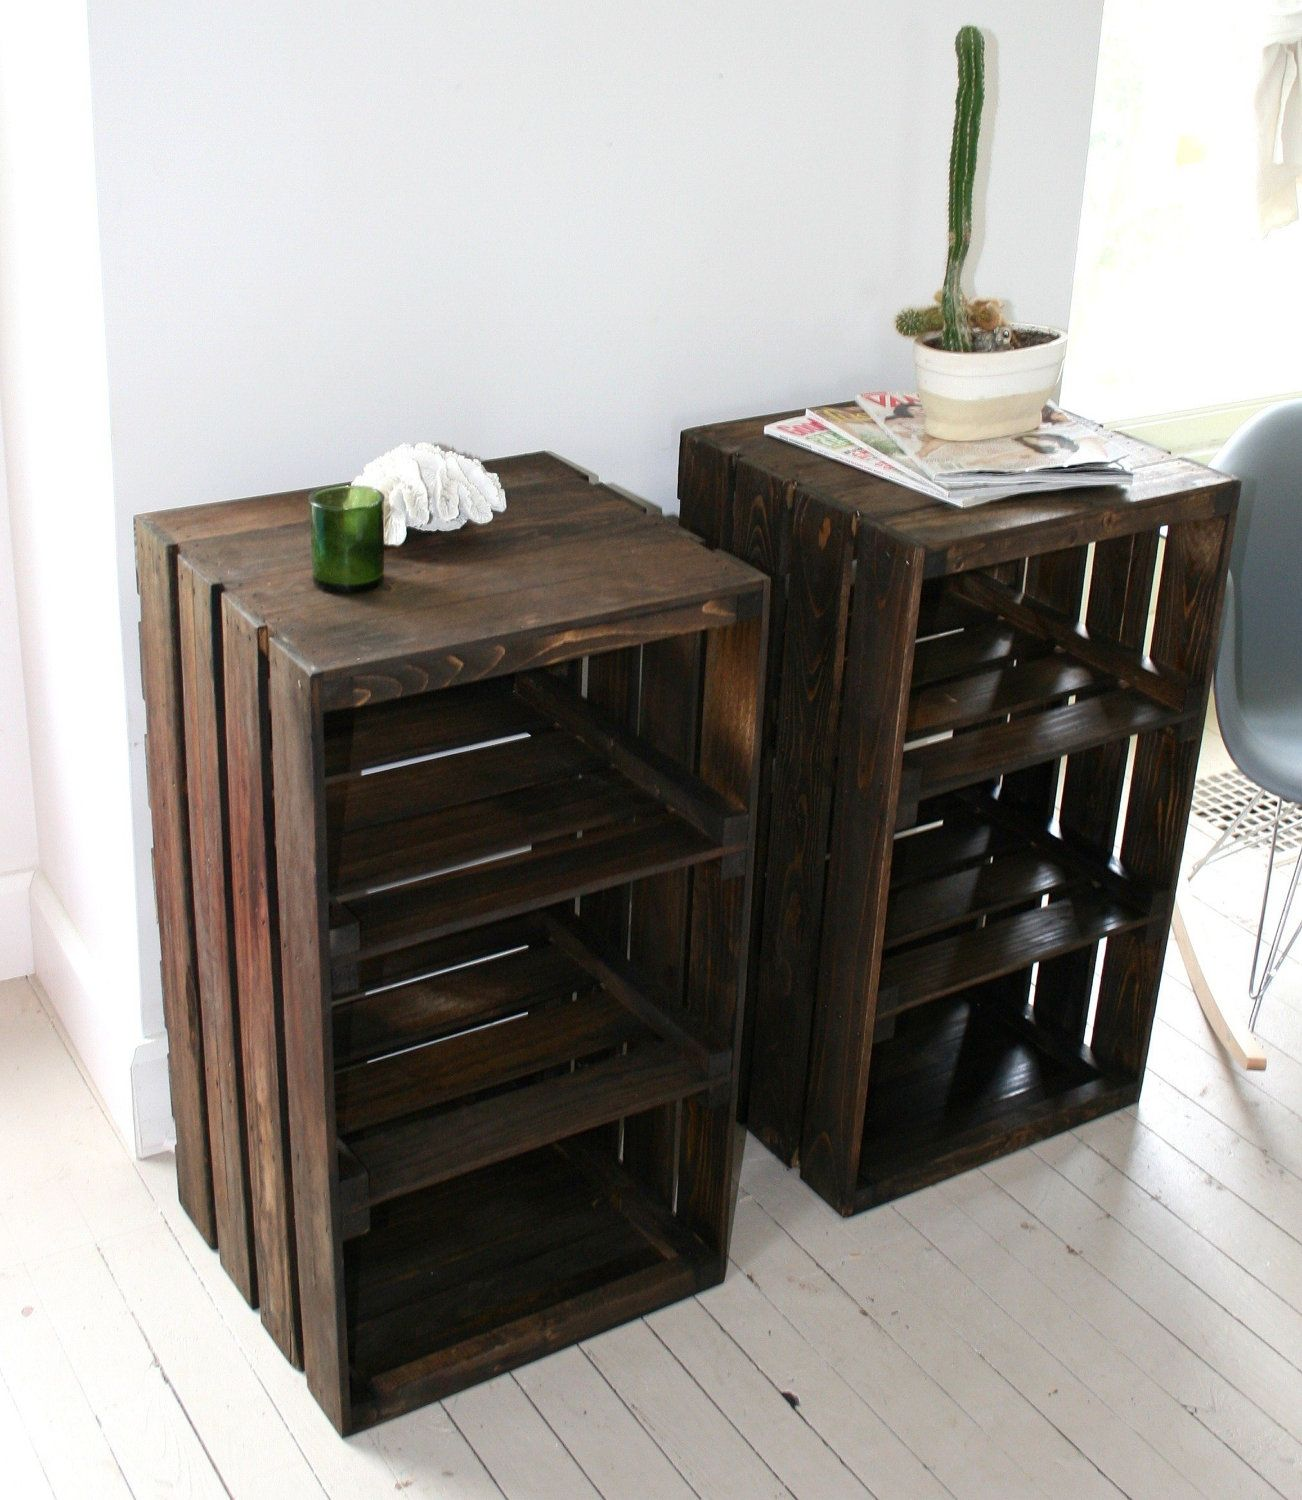 wood crate handmade table furniture nightstand handmade on fantastic repurposed furniture projects ideas in time for father s day id=68435